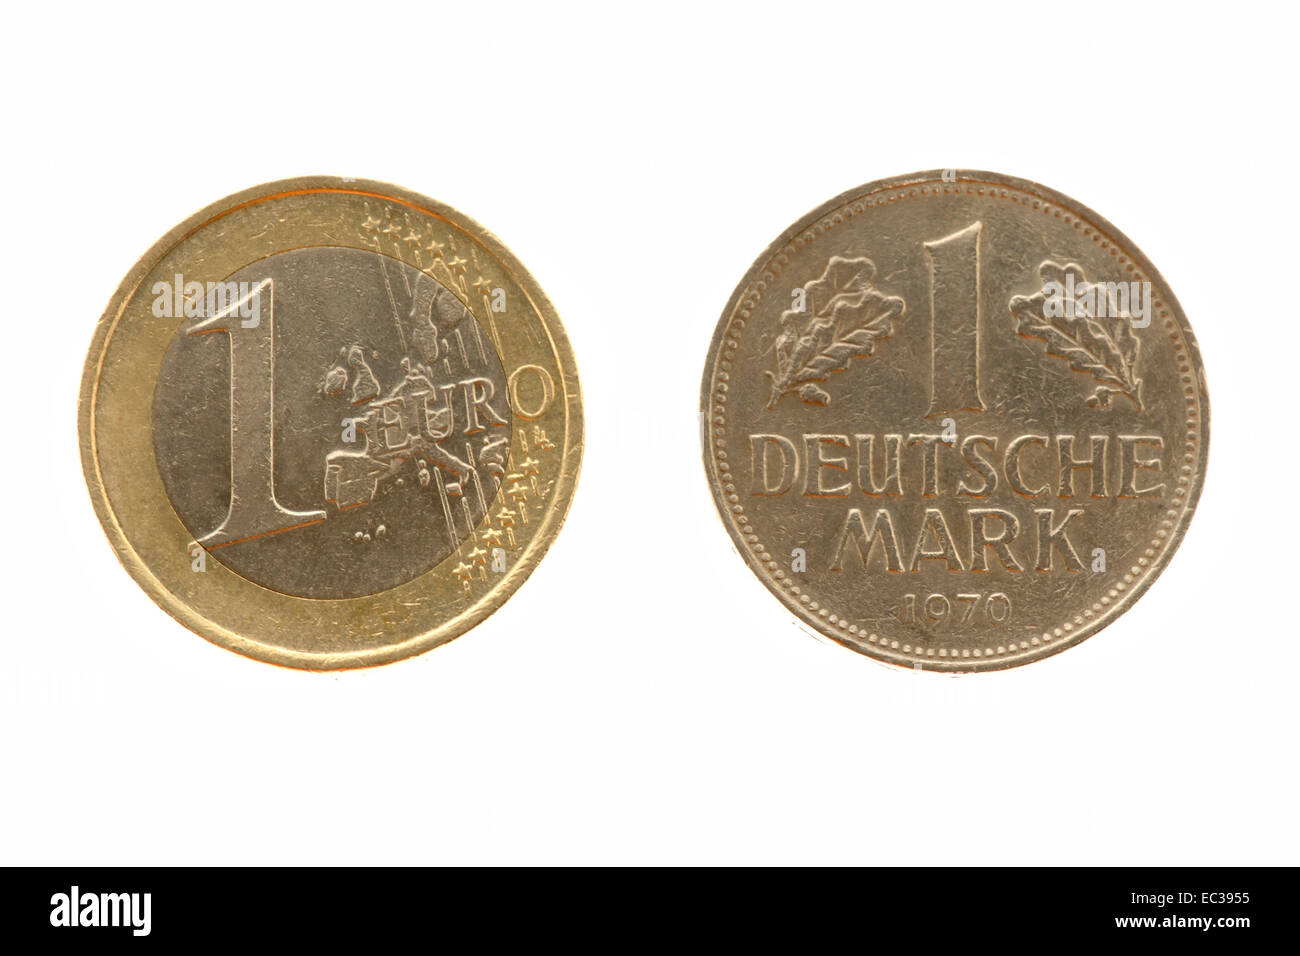 An 1 Euro coin and an 1 DM coin - Stock Image